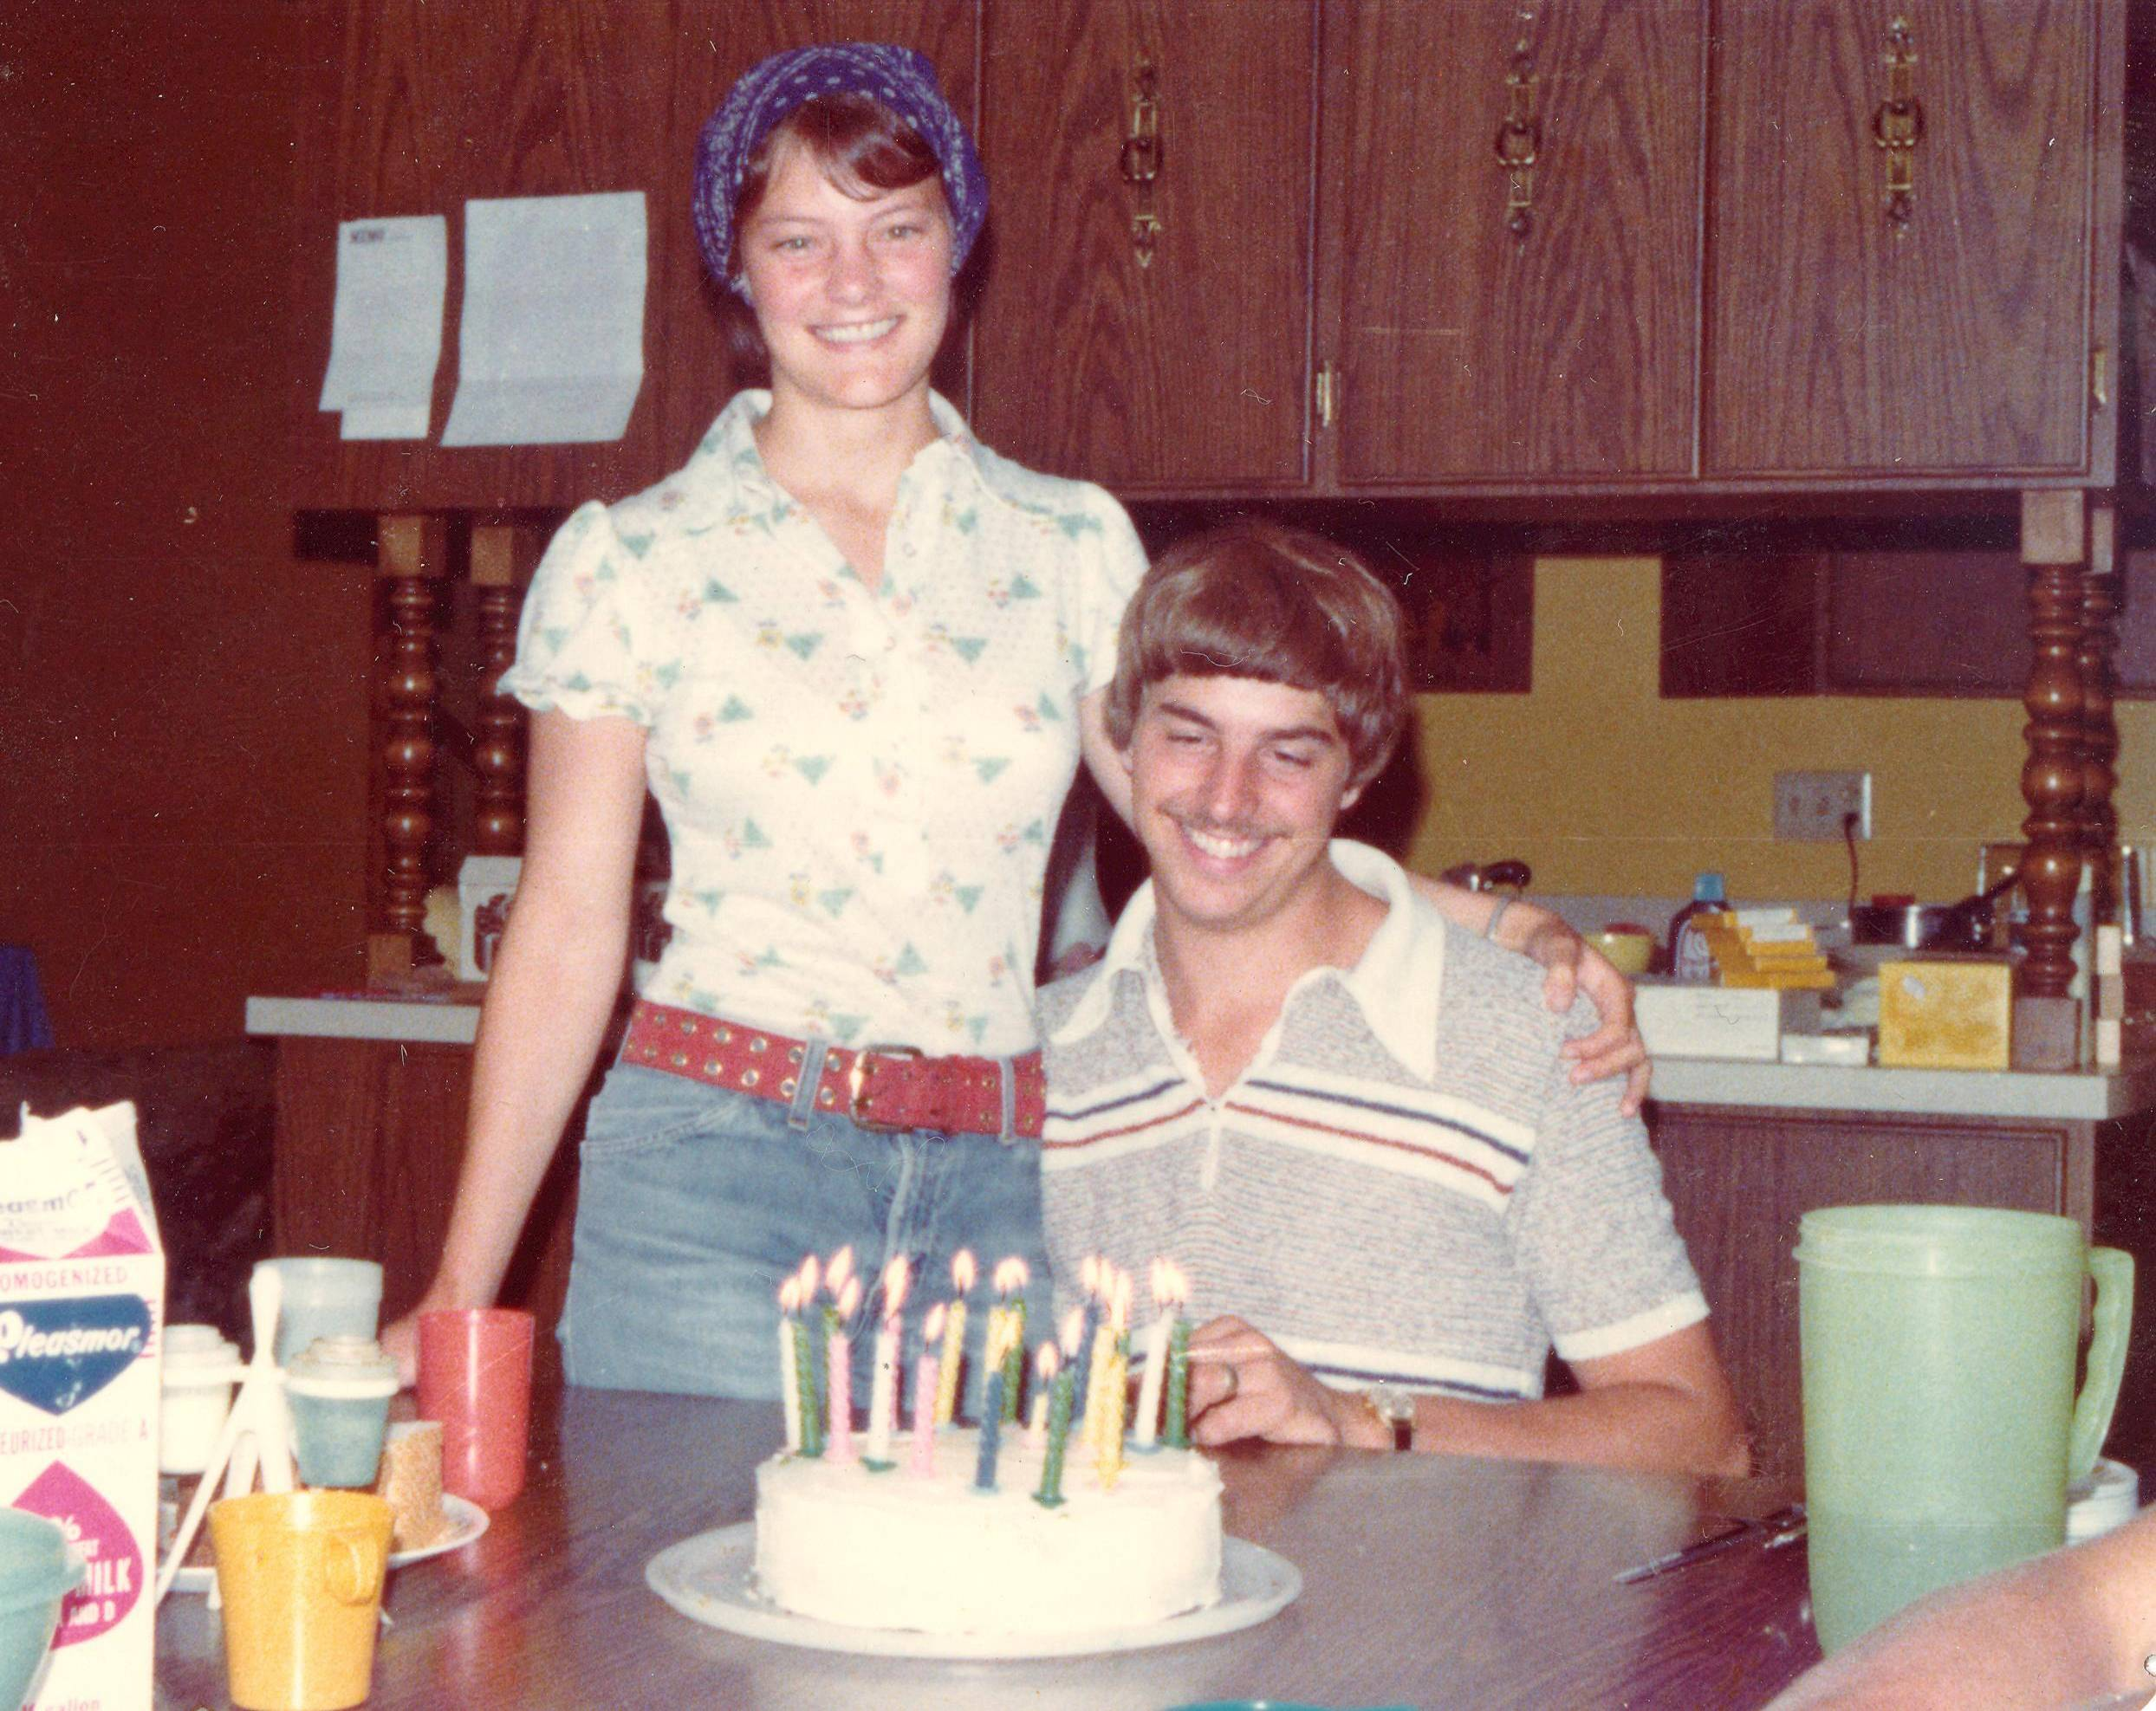 Grief expert Amy Florian of Hoffman Estates smiles years ago with her late husband John Willenborg on his 20th birthday celebration when they were living in Iowa.